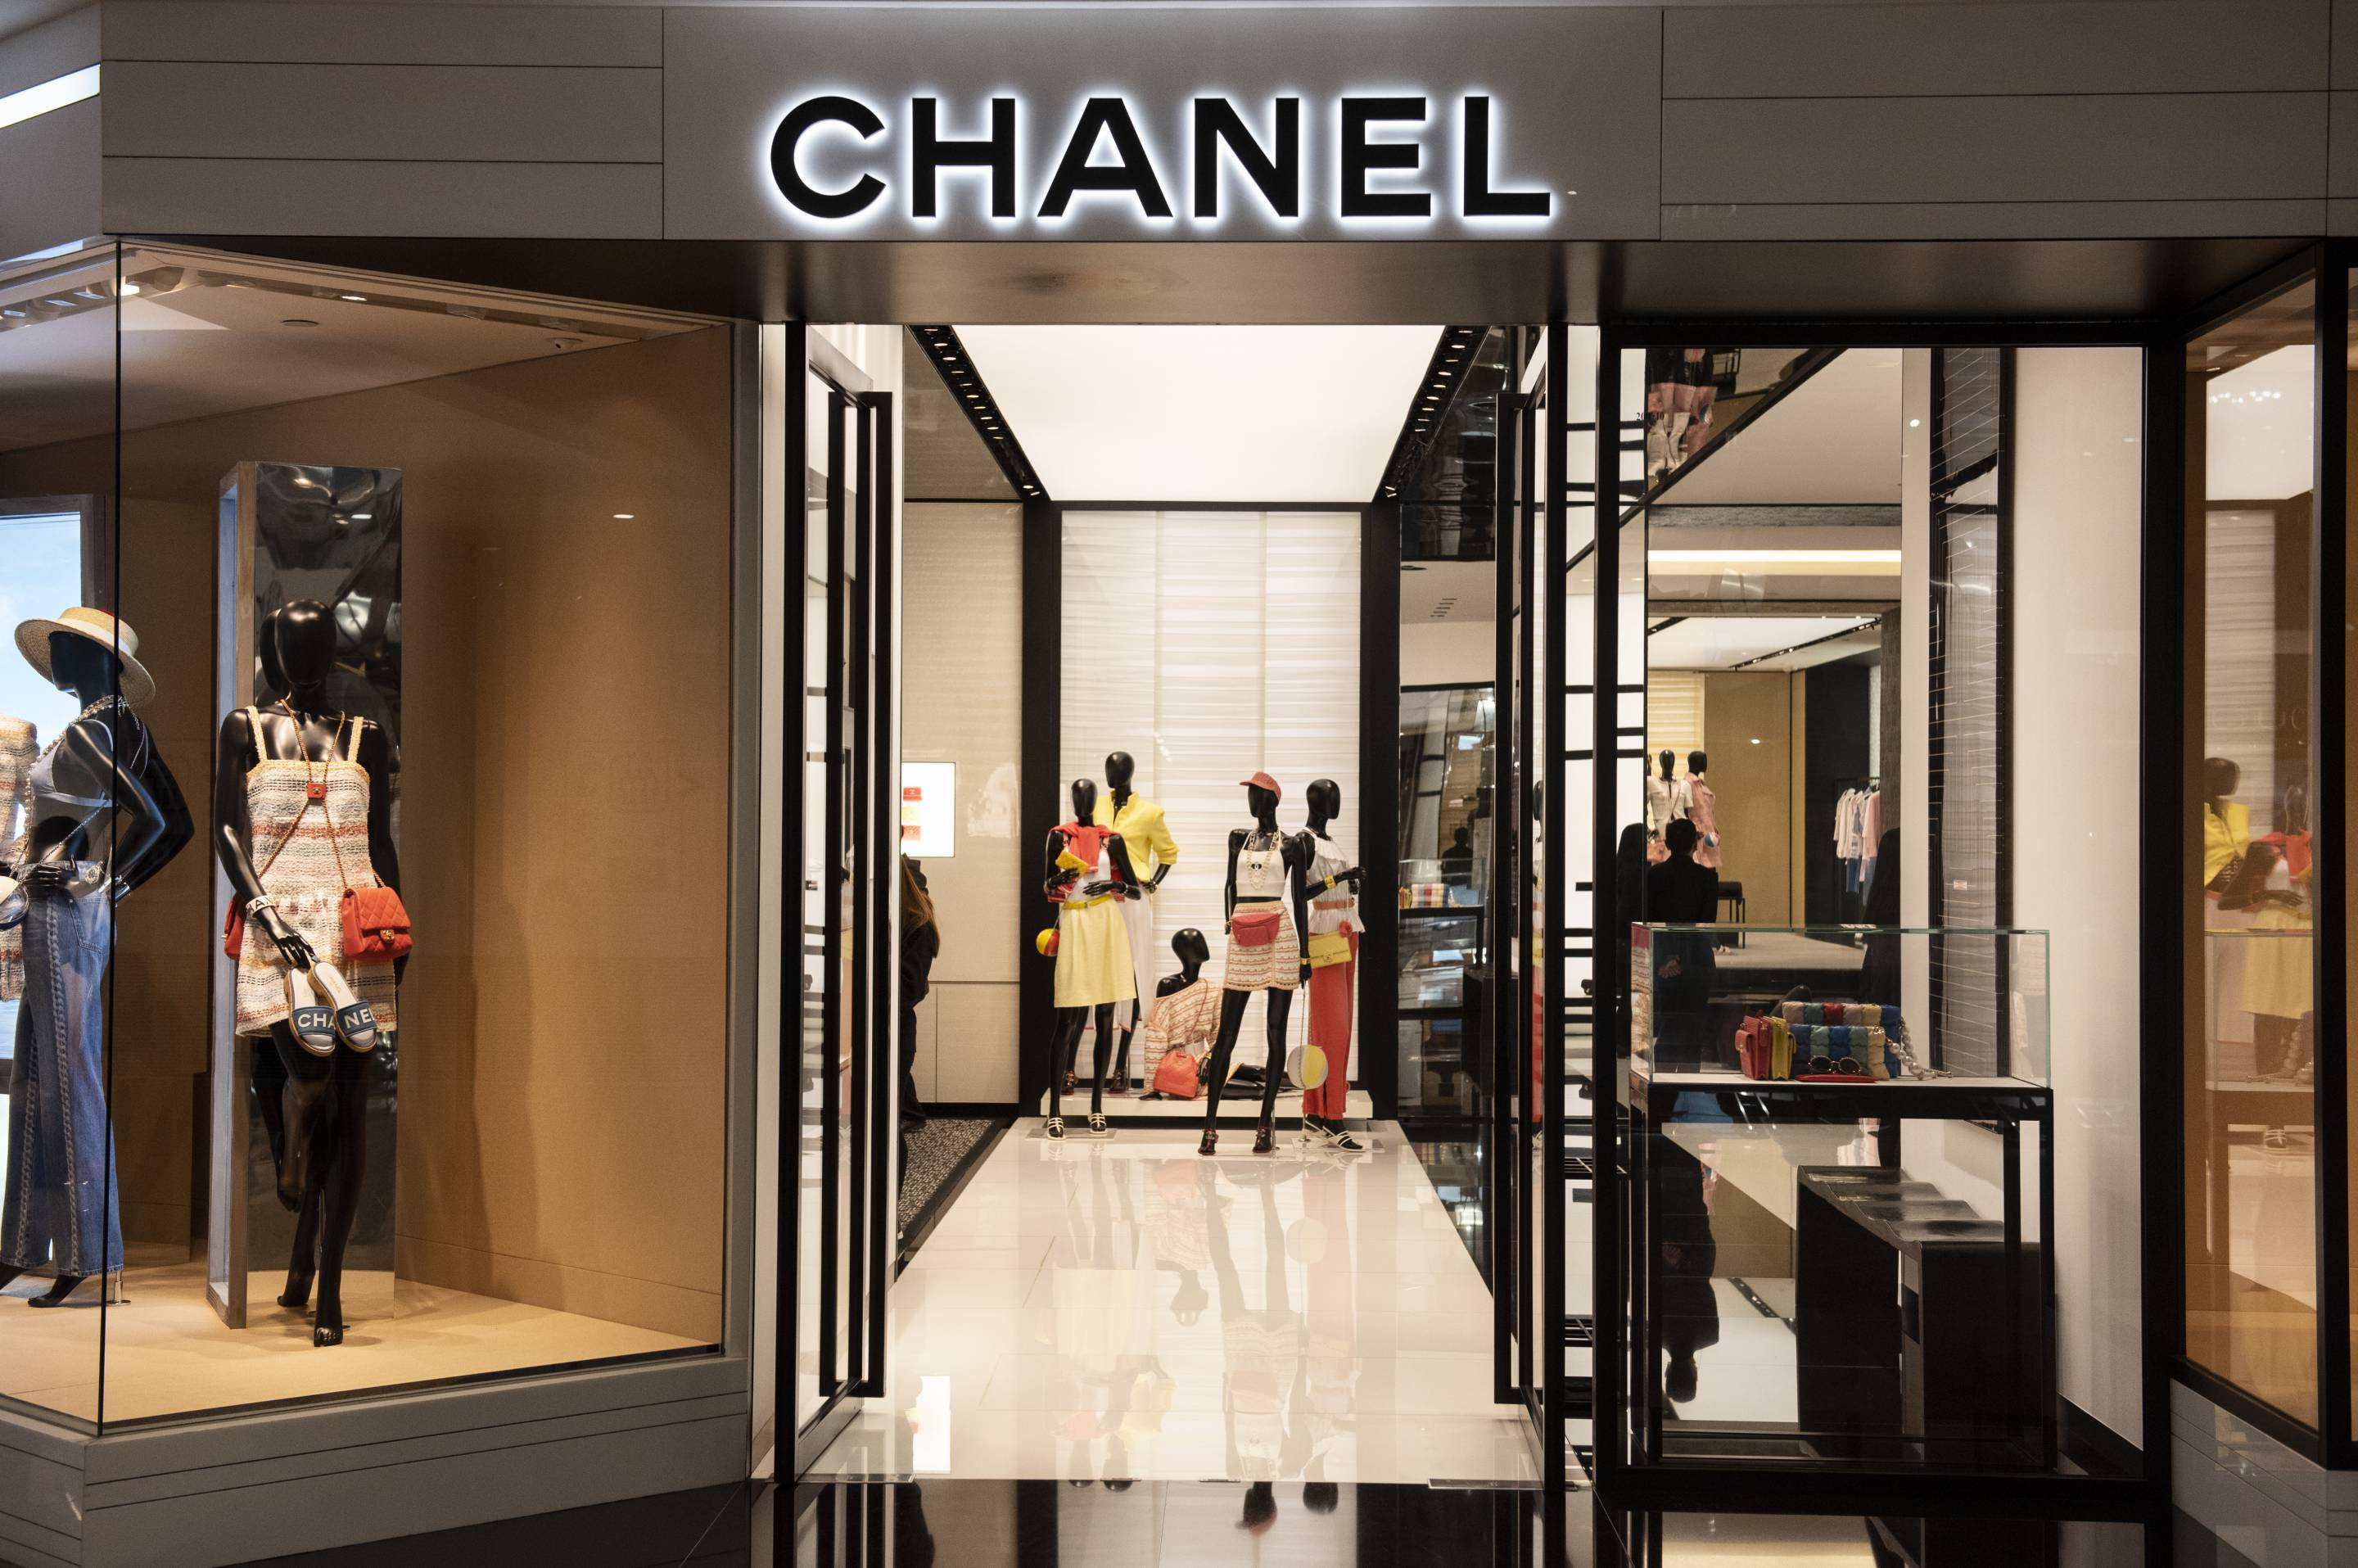 French multinational Chanel clothing and beauty products